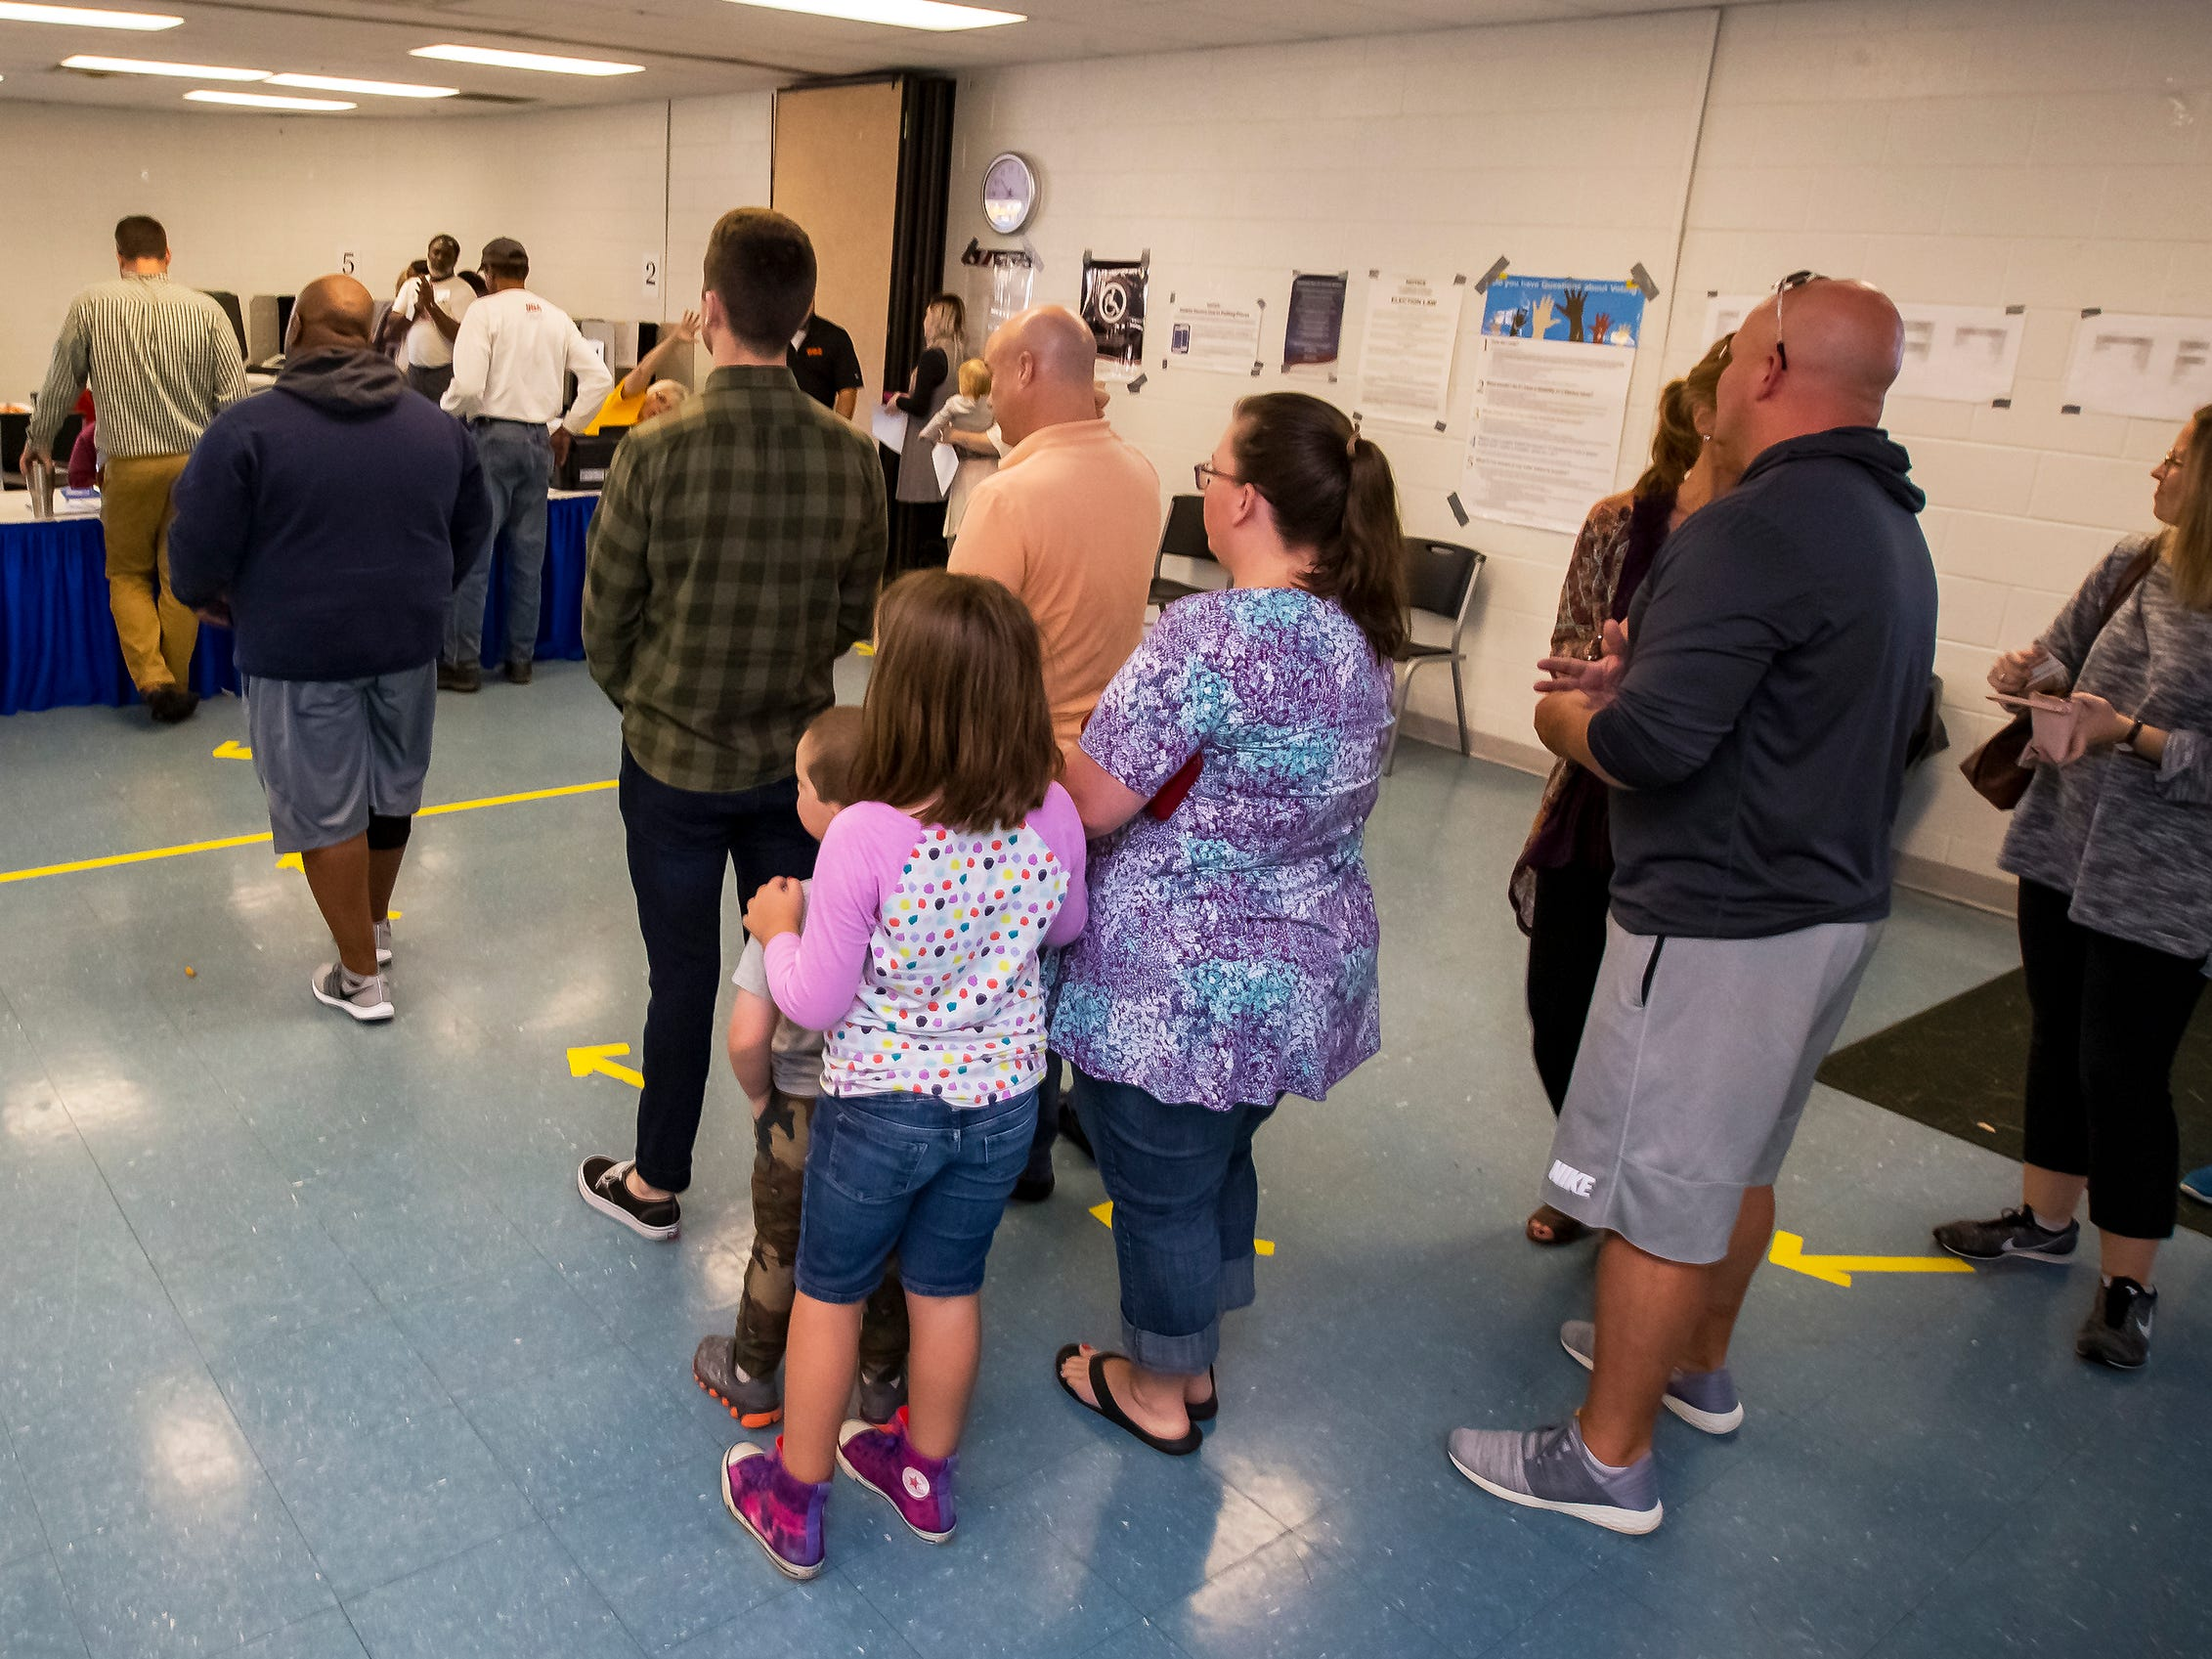 Voters form a line at SportsCom in Murfreesboro Tuesday morning for the 2018 midterm elections.